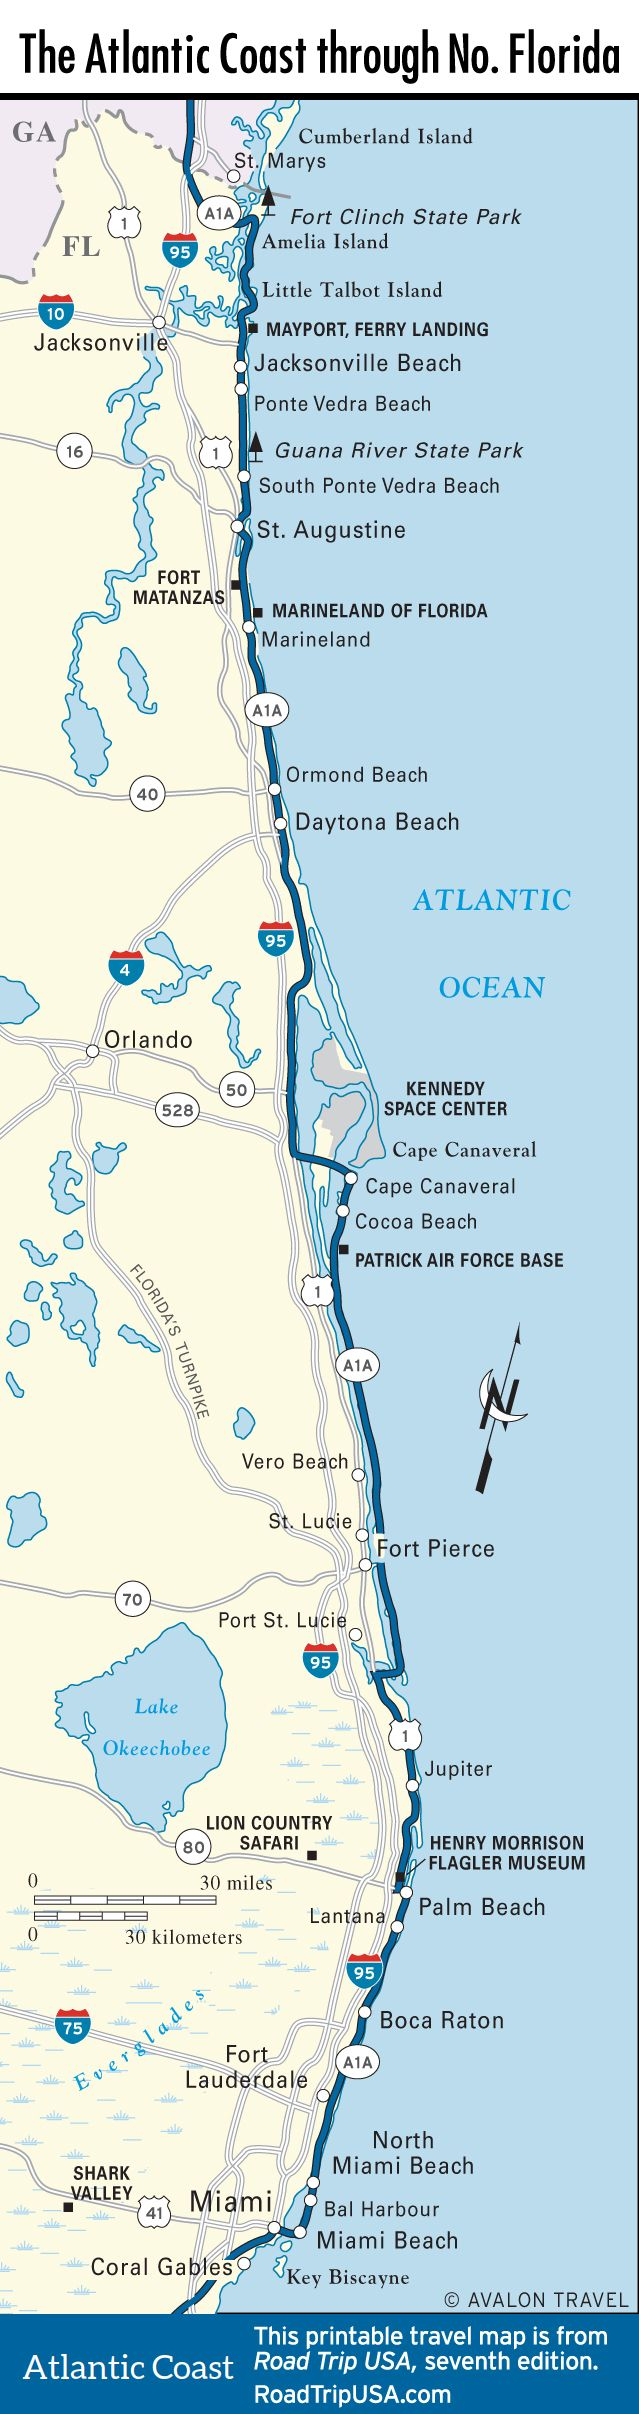 Map Of The Atlantic Coast Through Northern Florida. | Florida A1A - Map Of Beaches On The Gulf Side Of Florida